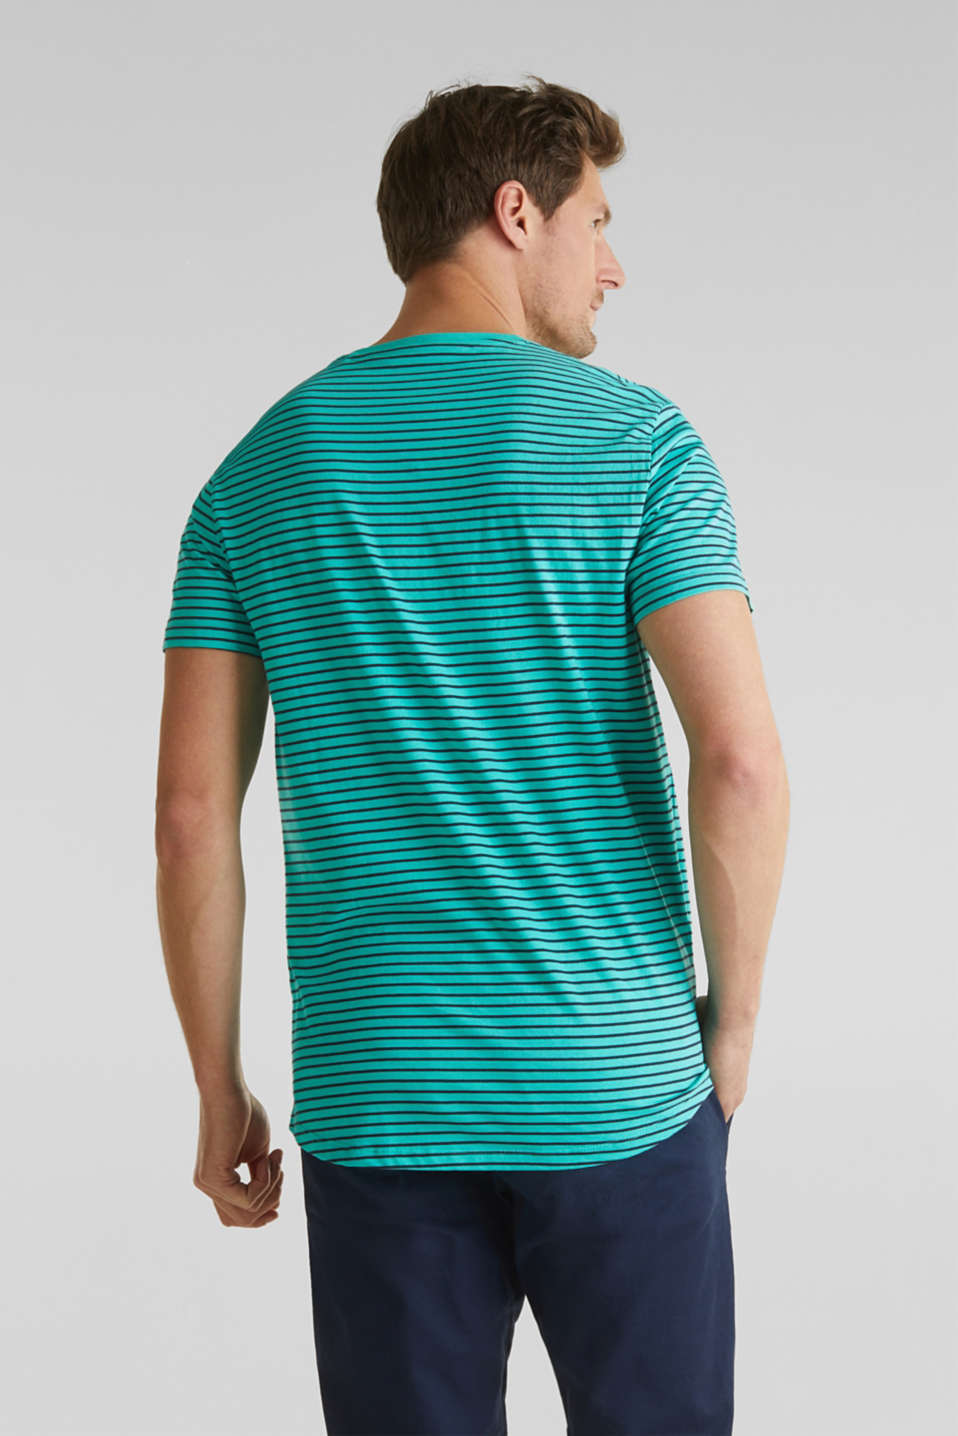 Jersey T-shirt with stripes, 100% cotton, LIGHT AQUA GREEN 3, detail image number 2